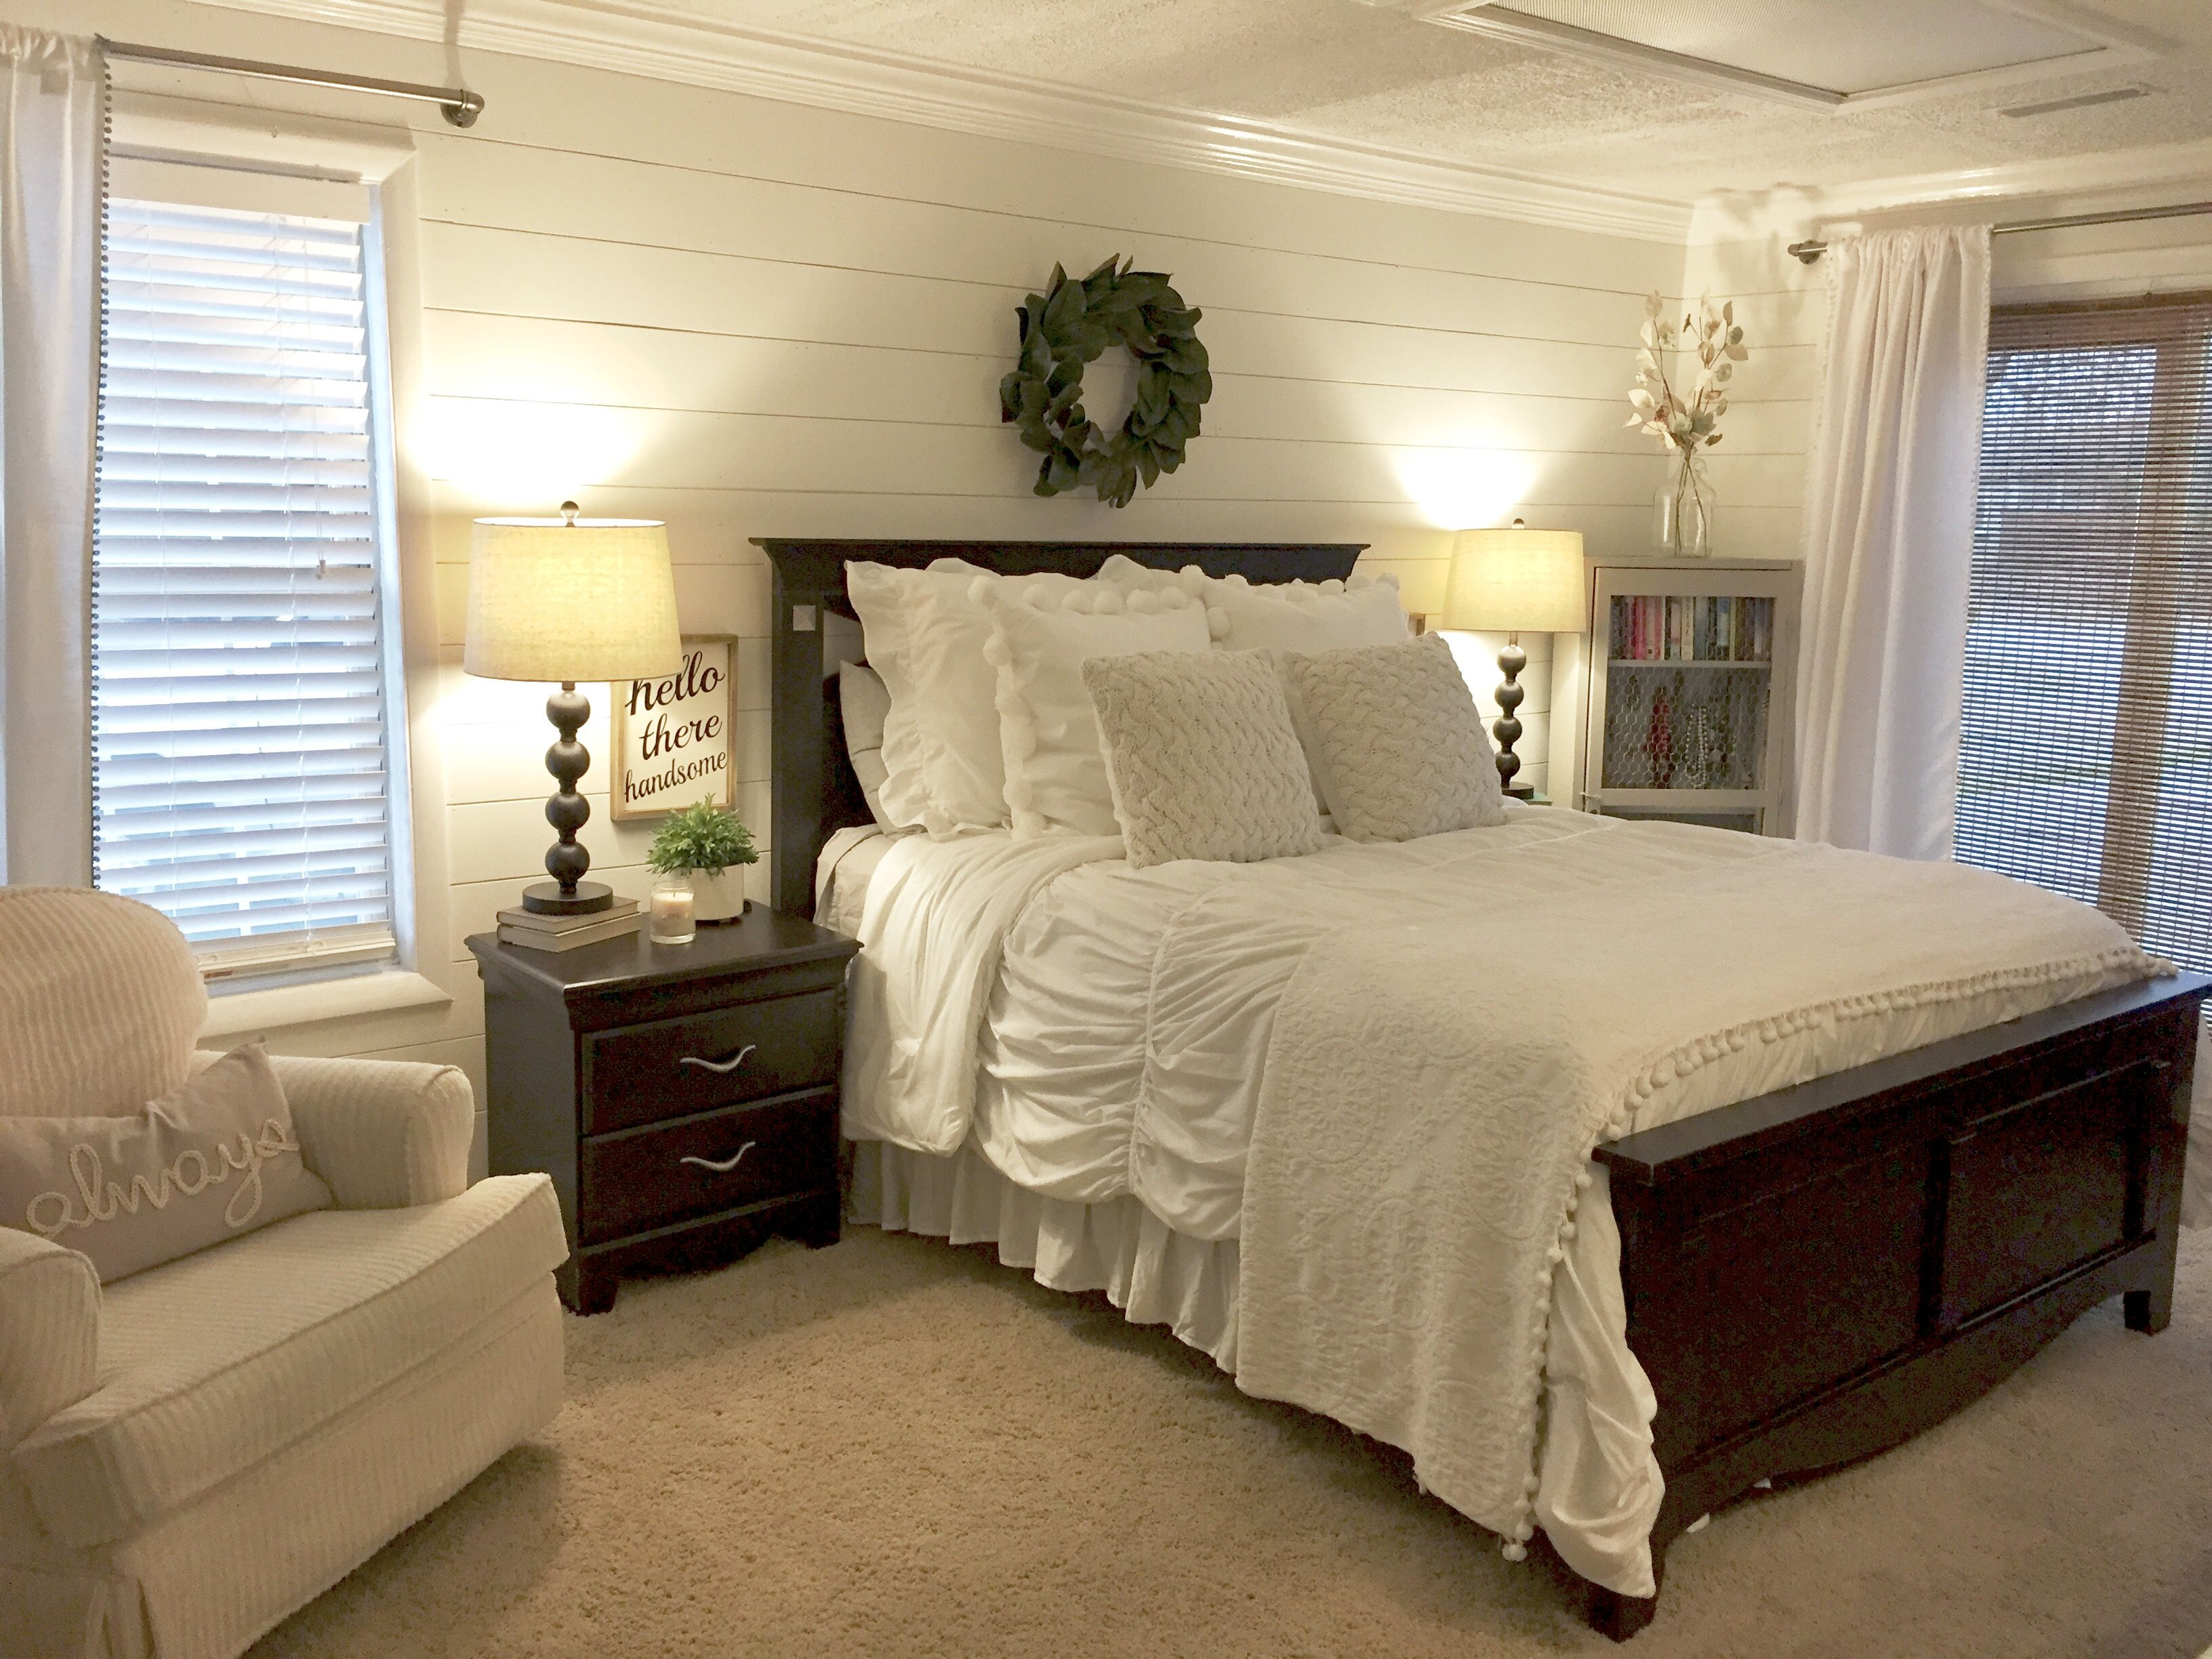 36+ Rustic Farmhouse Bedroom Design Ideas. A Must See List!! I Think